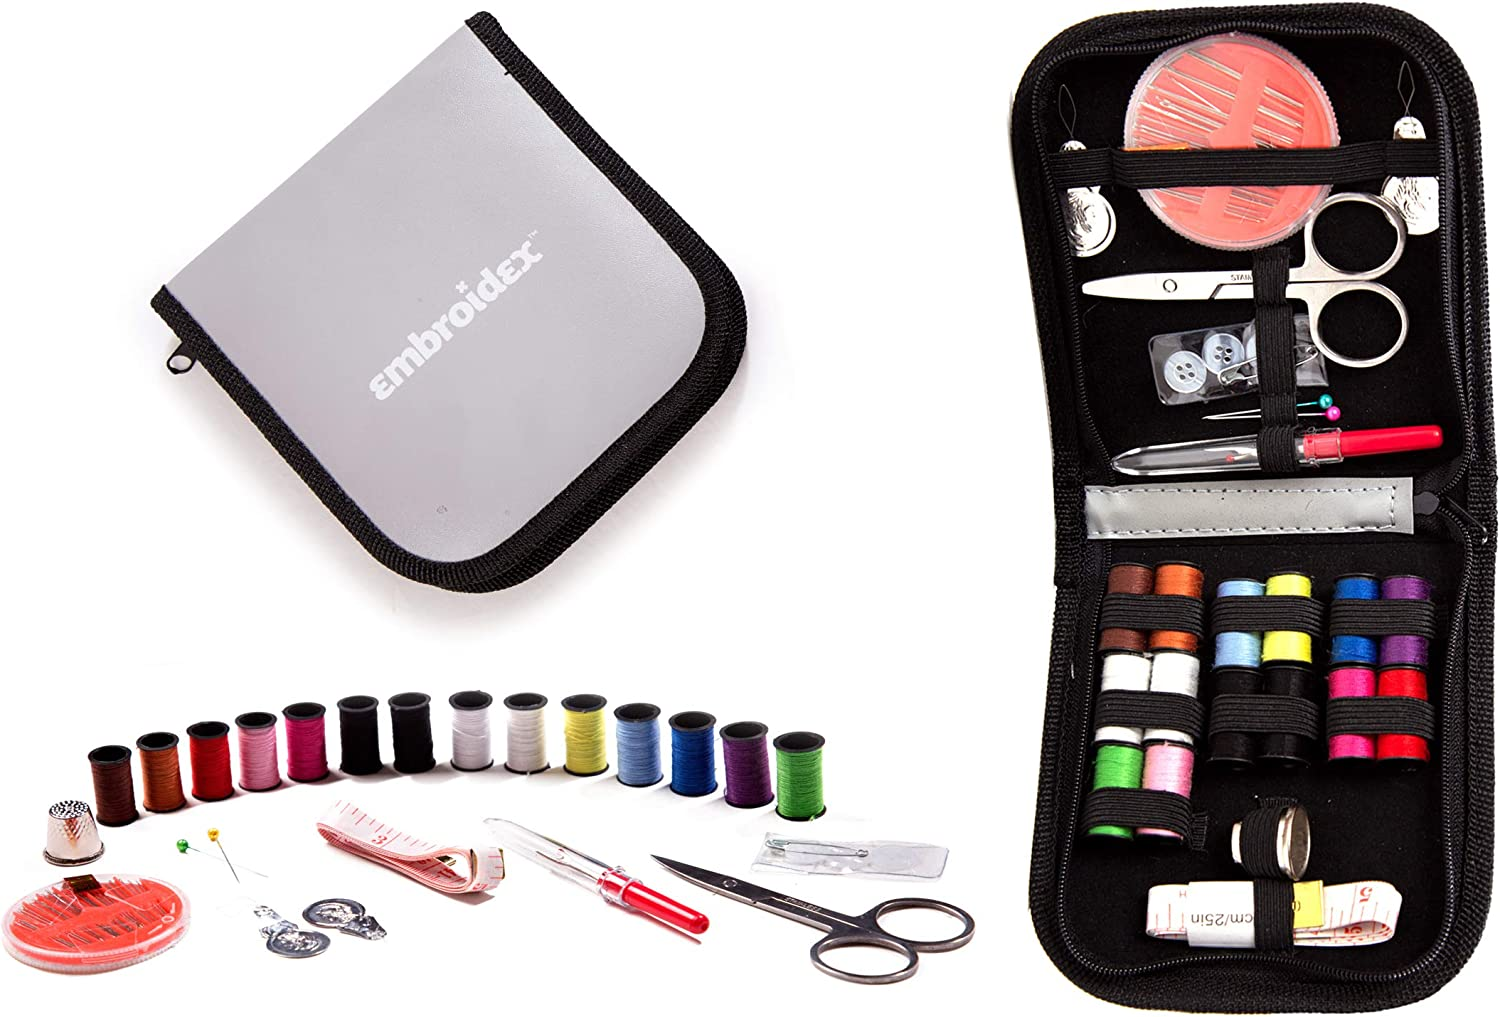 Embroidex Sewing Kit for Home, Travel & Emergencies